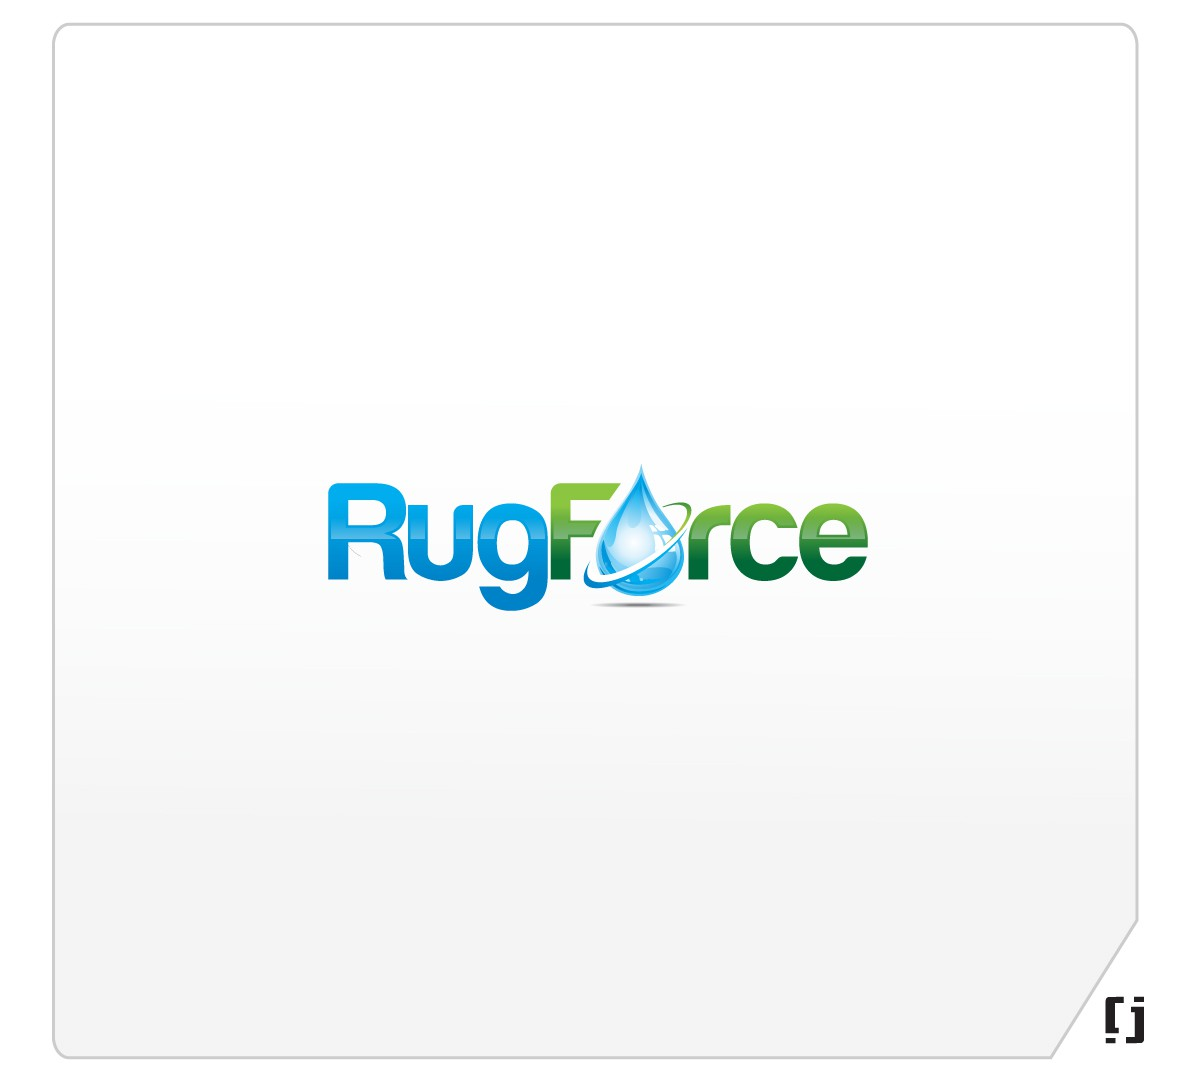 New logo wanted for RugForce, Rug Force, or RugForce.com